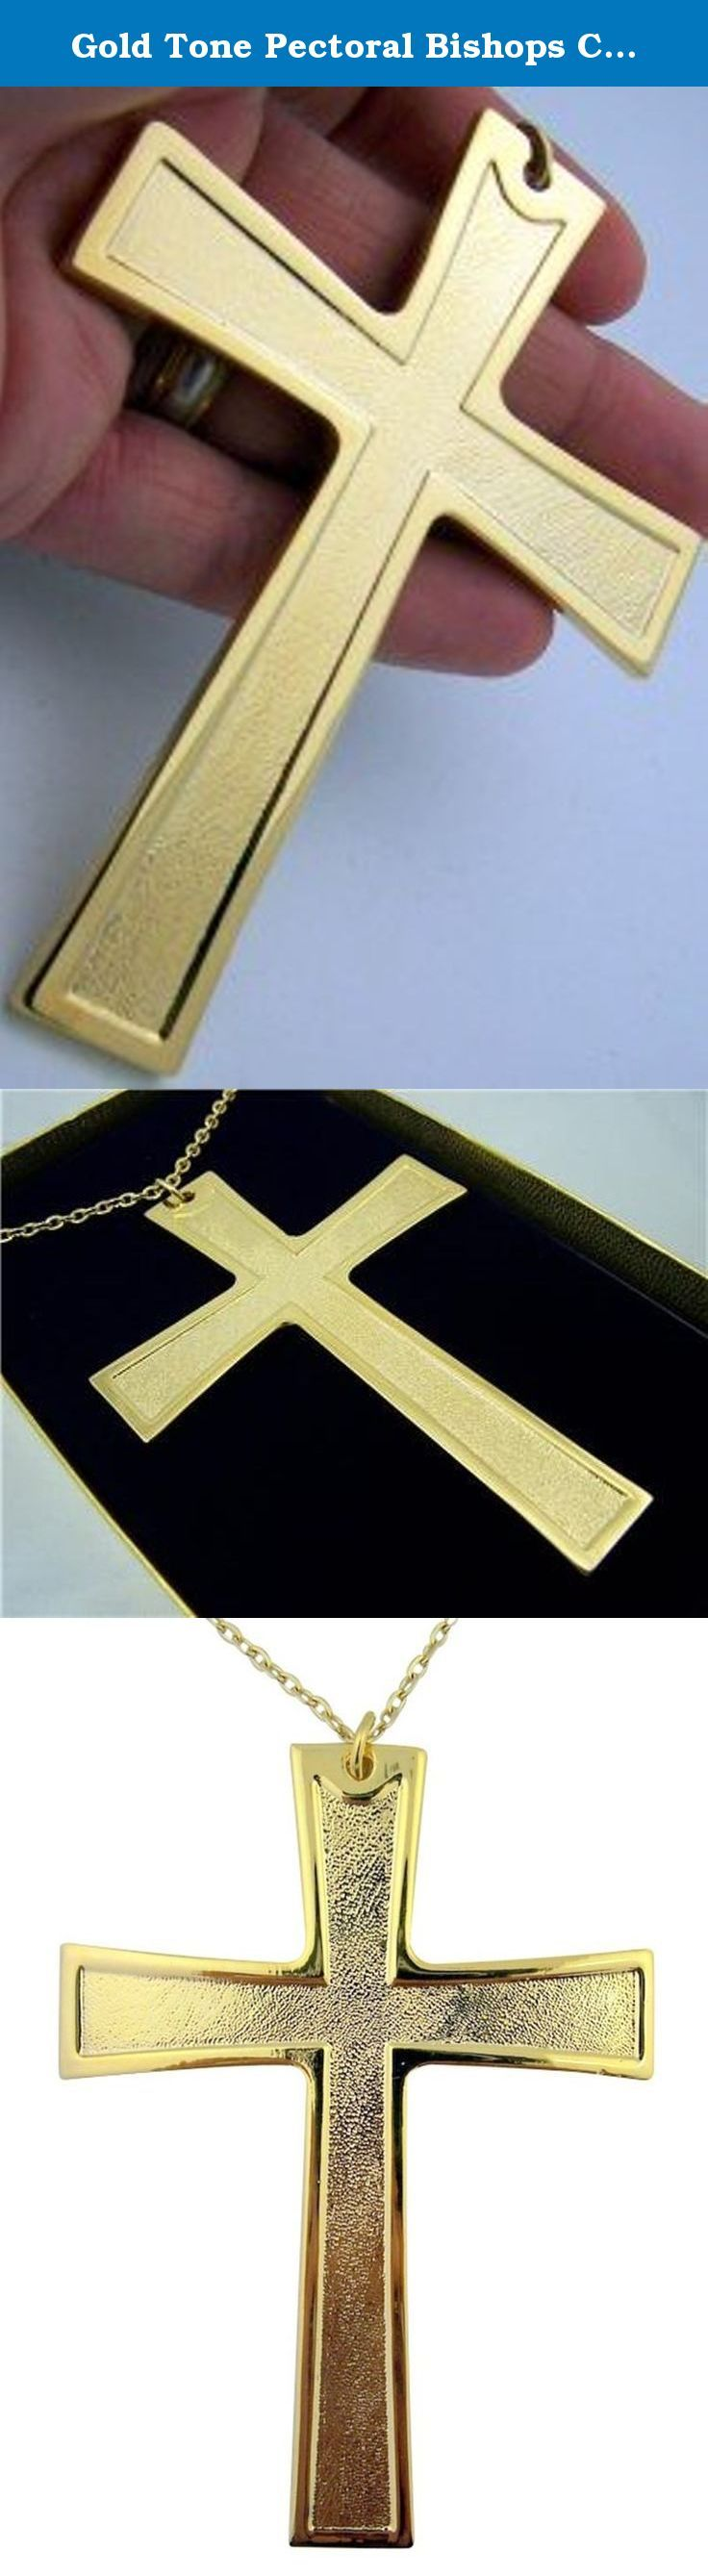 Gold Tone Pectoral Bishops Clergy Cross on Chain Necklace, 4 1/4 Inch. The Crucifix is a cross with the Body of Christ, an ancient symbol used within the Catholic, Eastern Orthodox, Anglican and Lutheran churches.